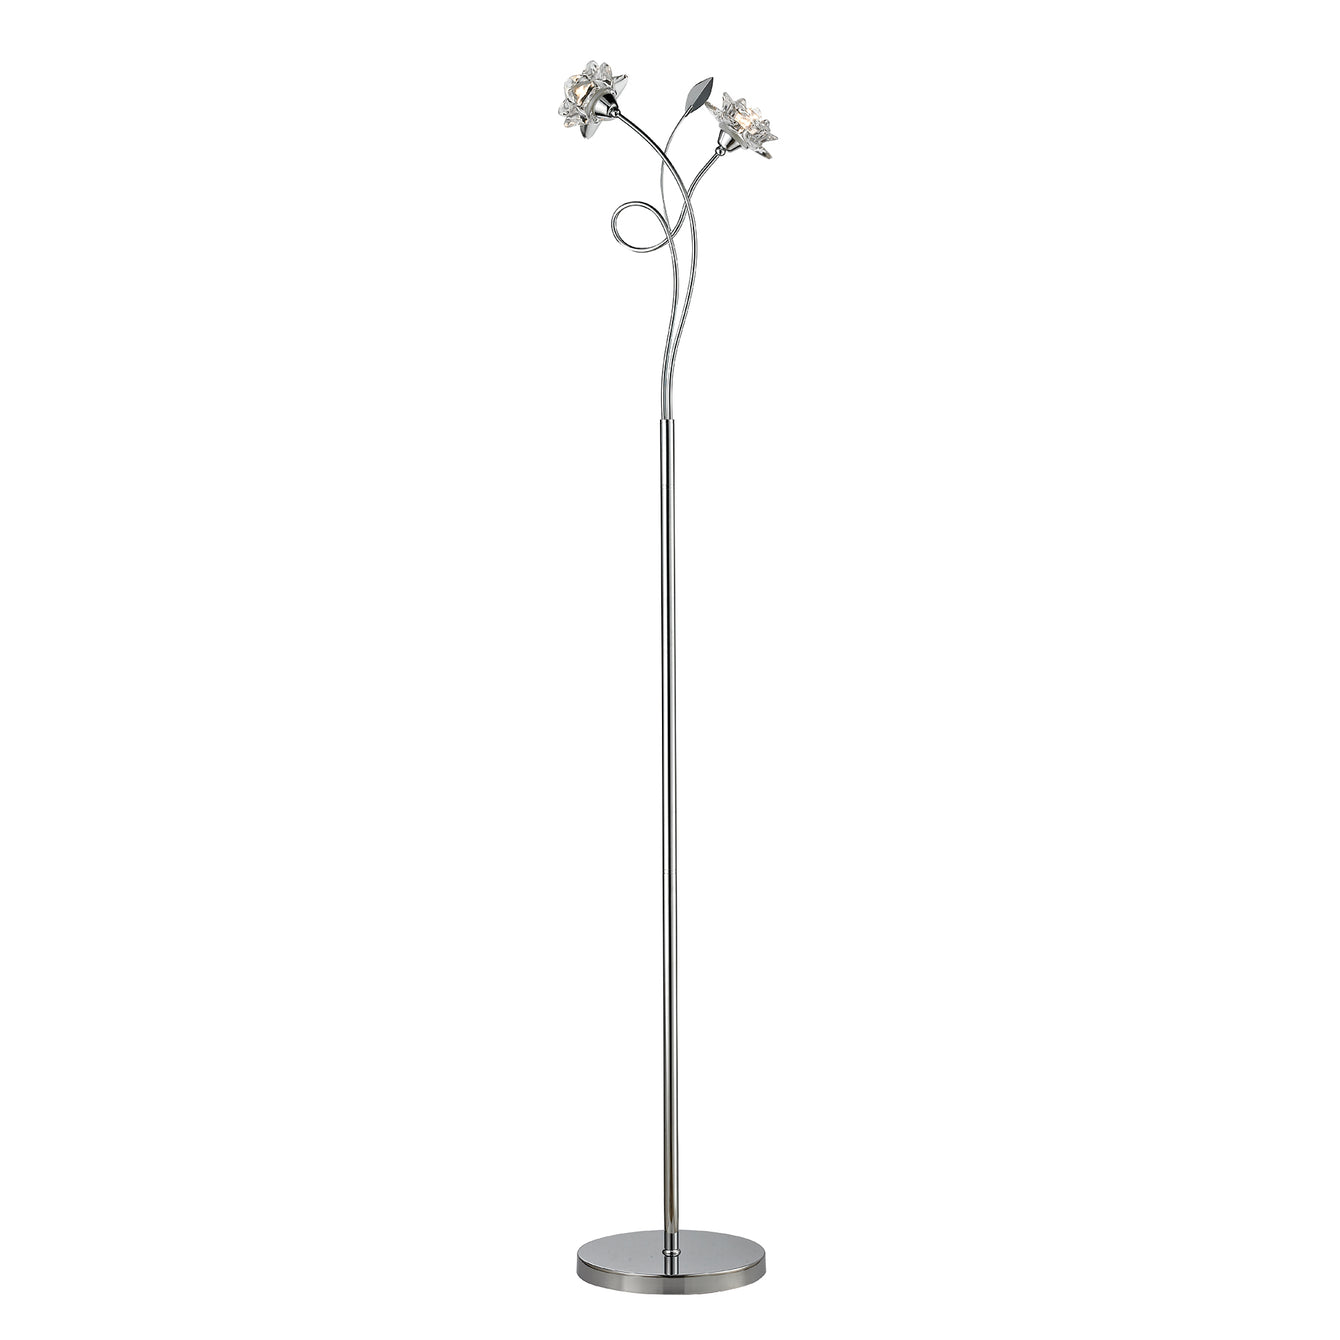 Ruislip Table and Floor Lamp LED Light - Buy It Better